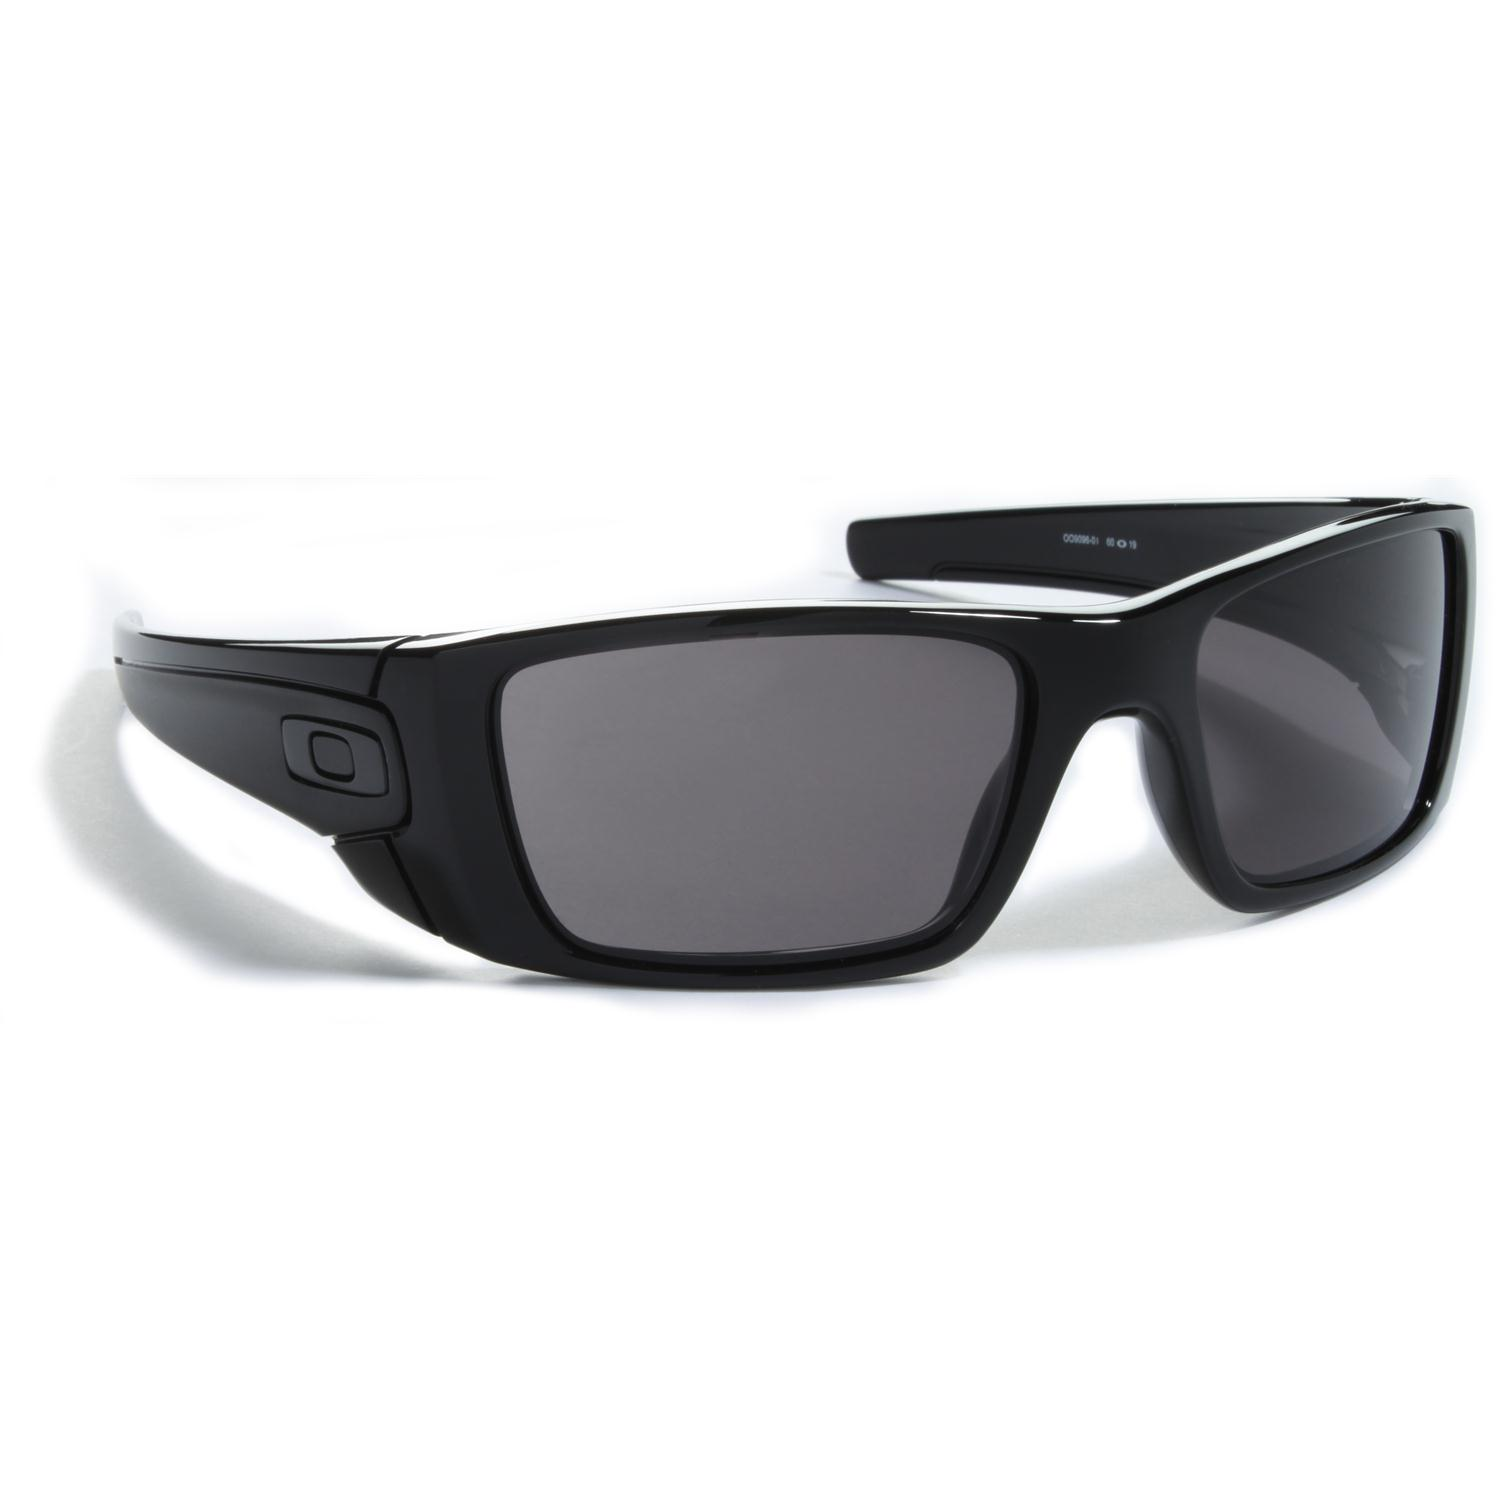 Hmzacuvbyjhnq30 Cheap Oakley Sunglasses Uk